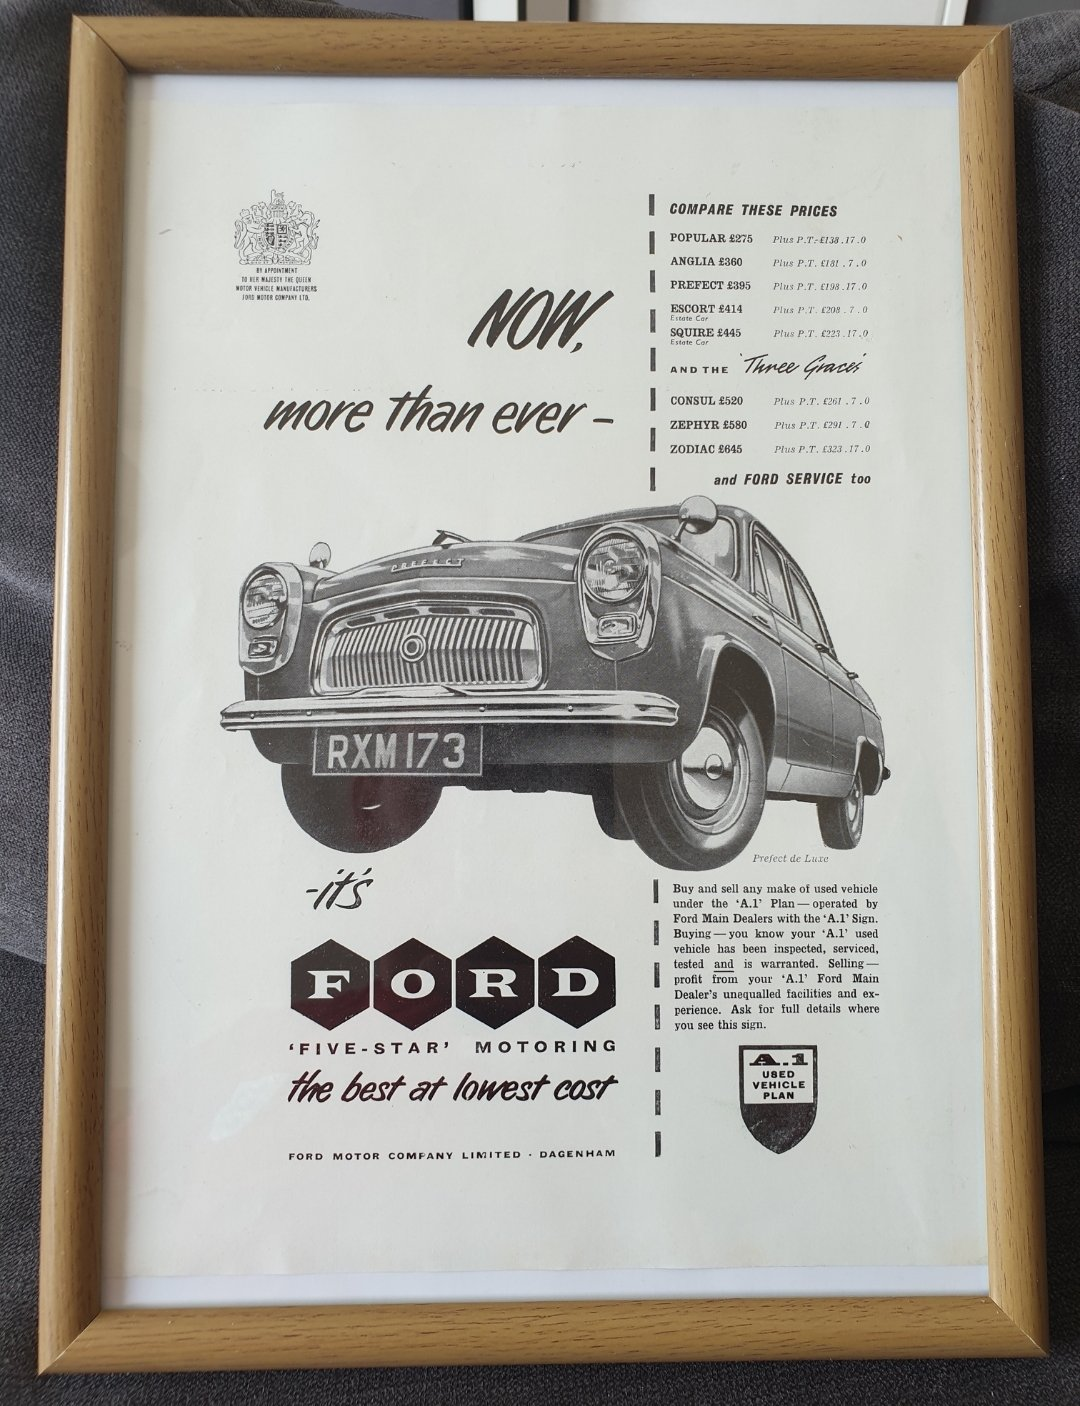 1956 Ford Prefect advert Original  For Sale (picture 1 of 2)